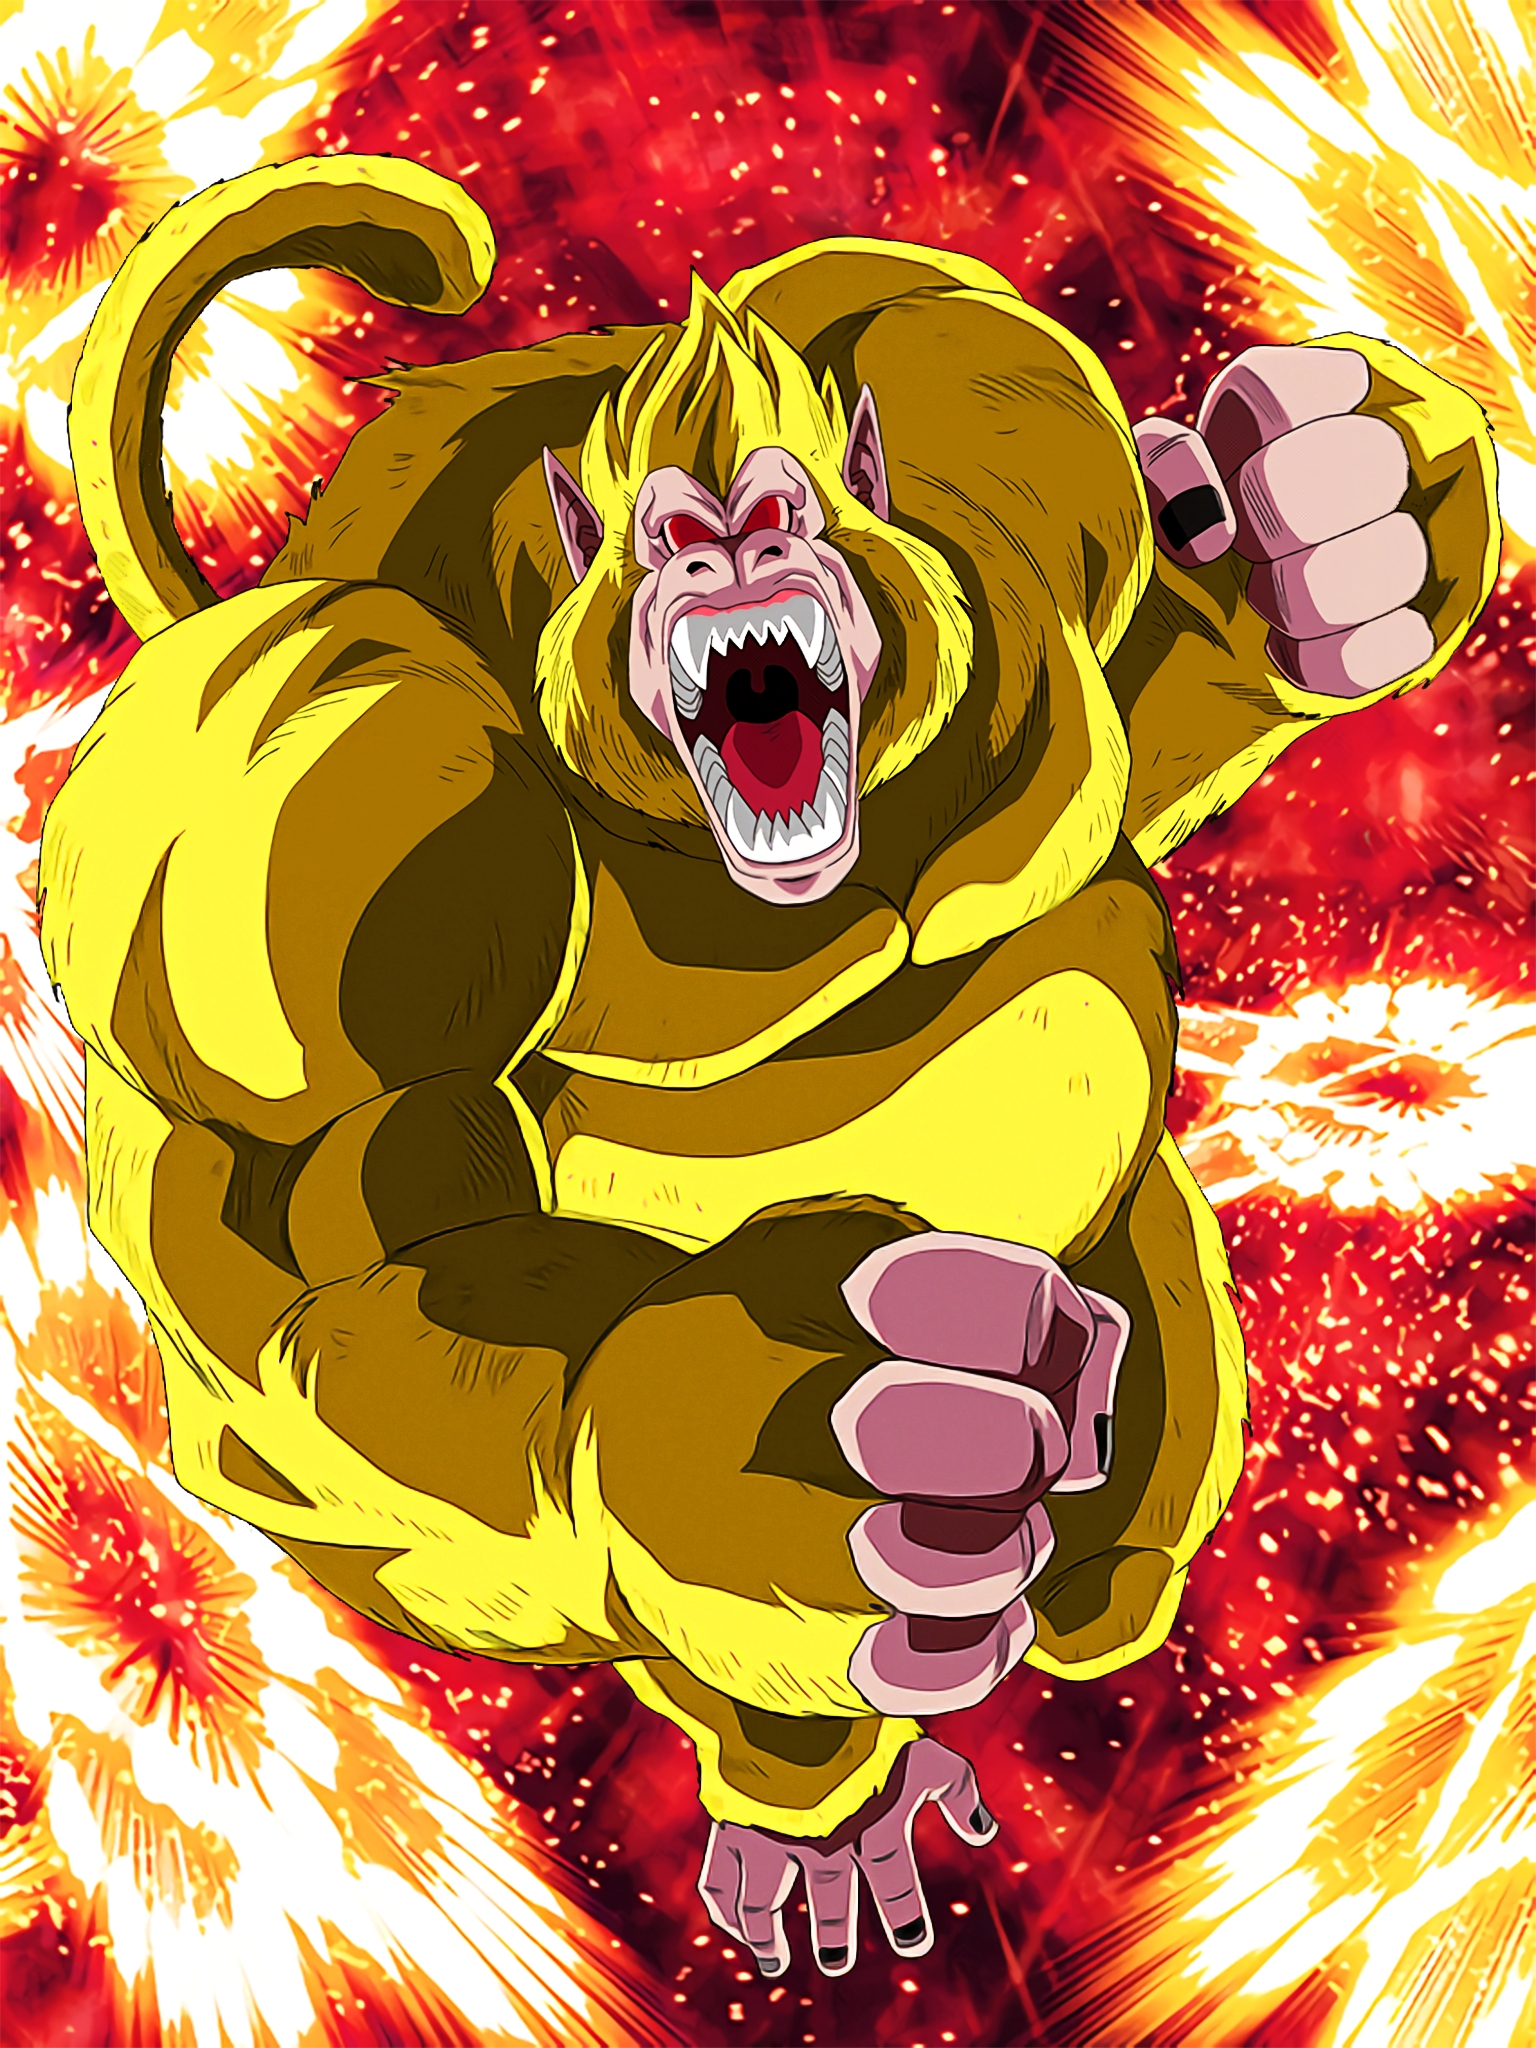 Inklings of Ultimate Power Super Saiyan 3 Goku GT Golden Giant Ape Art (Dragon Ball Z Dokkan Battle) .jpg